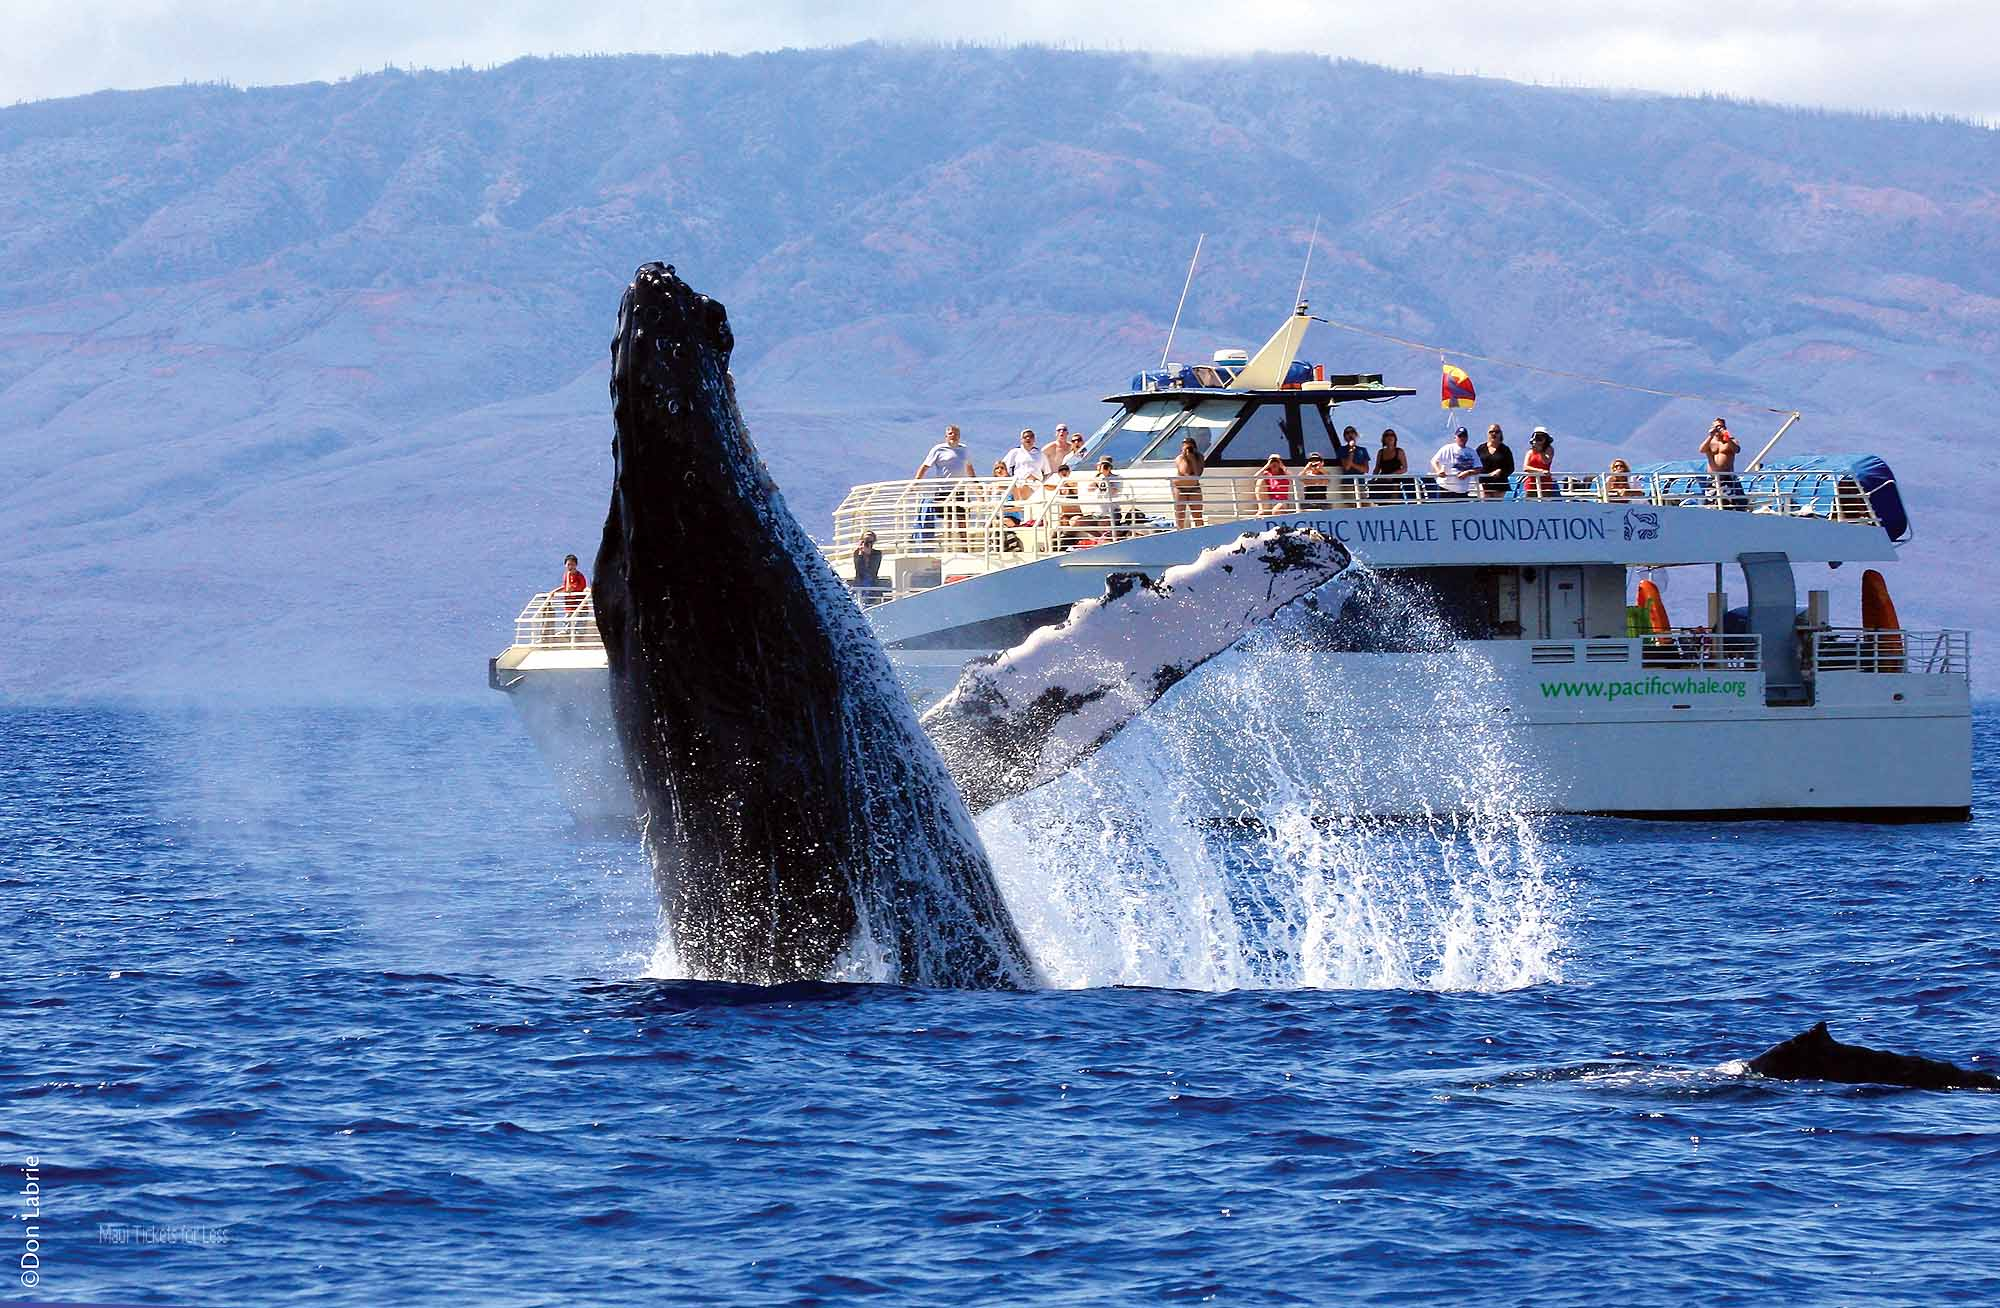 Pacific Whale Foundation – Maui Whale Watches